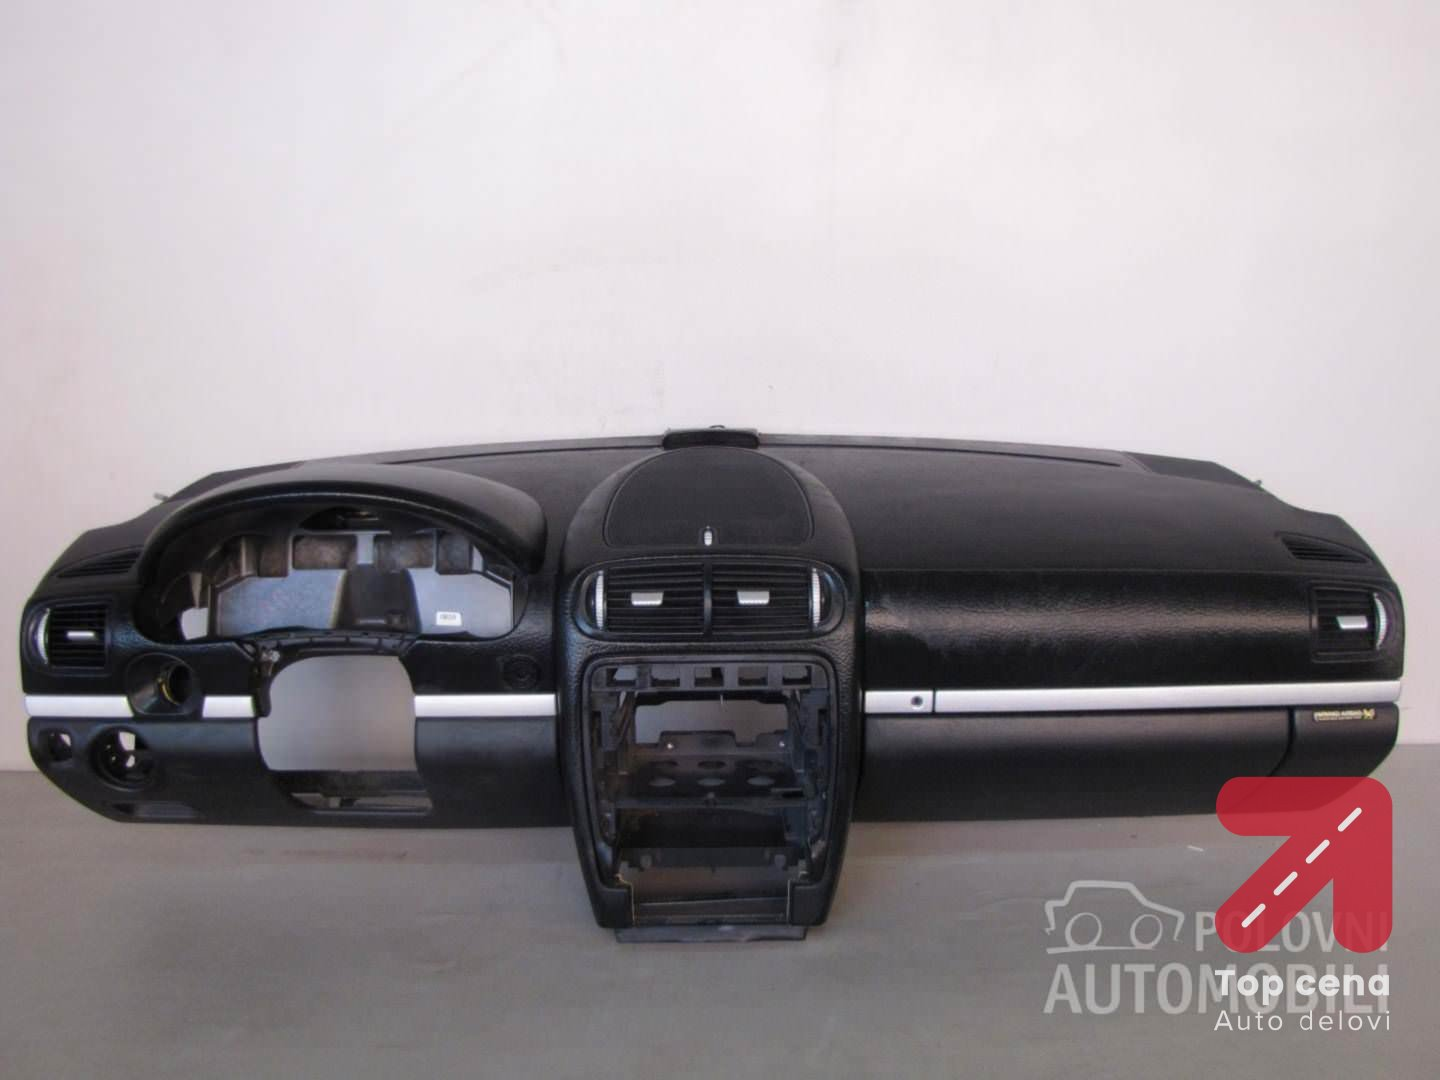 INSTRUMENT TABLA AIRBAG za Porsche Cayenne od 2003. do 2010. god.